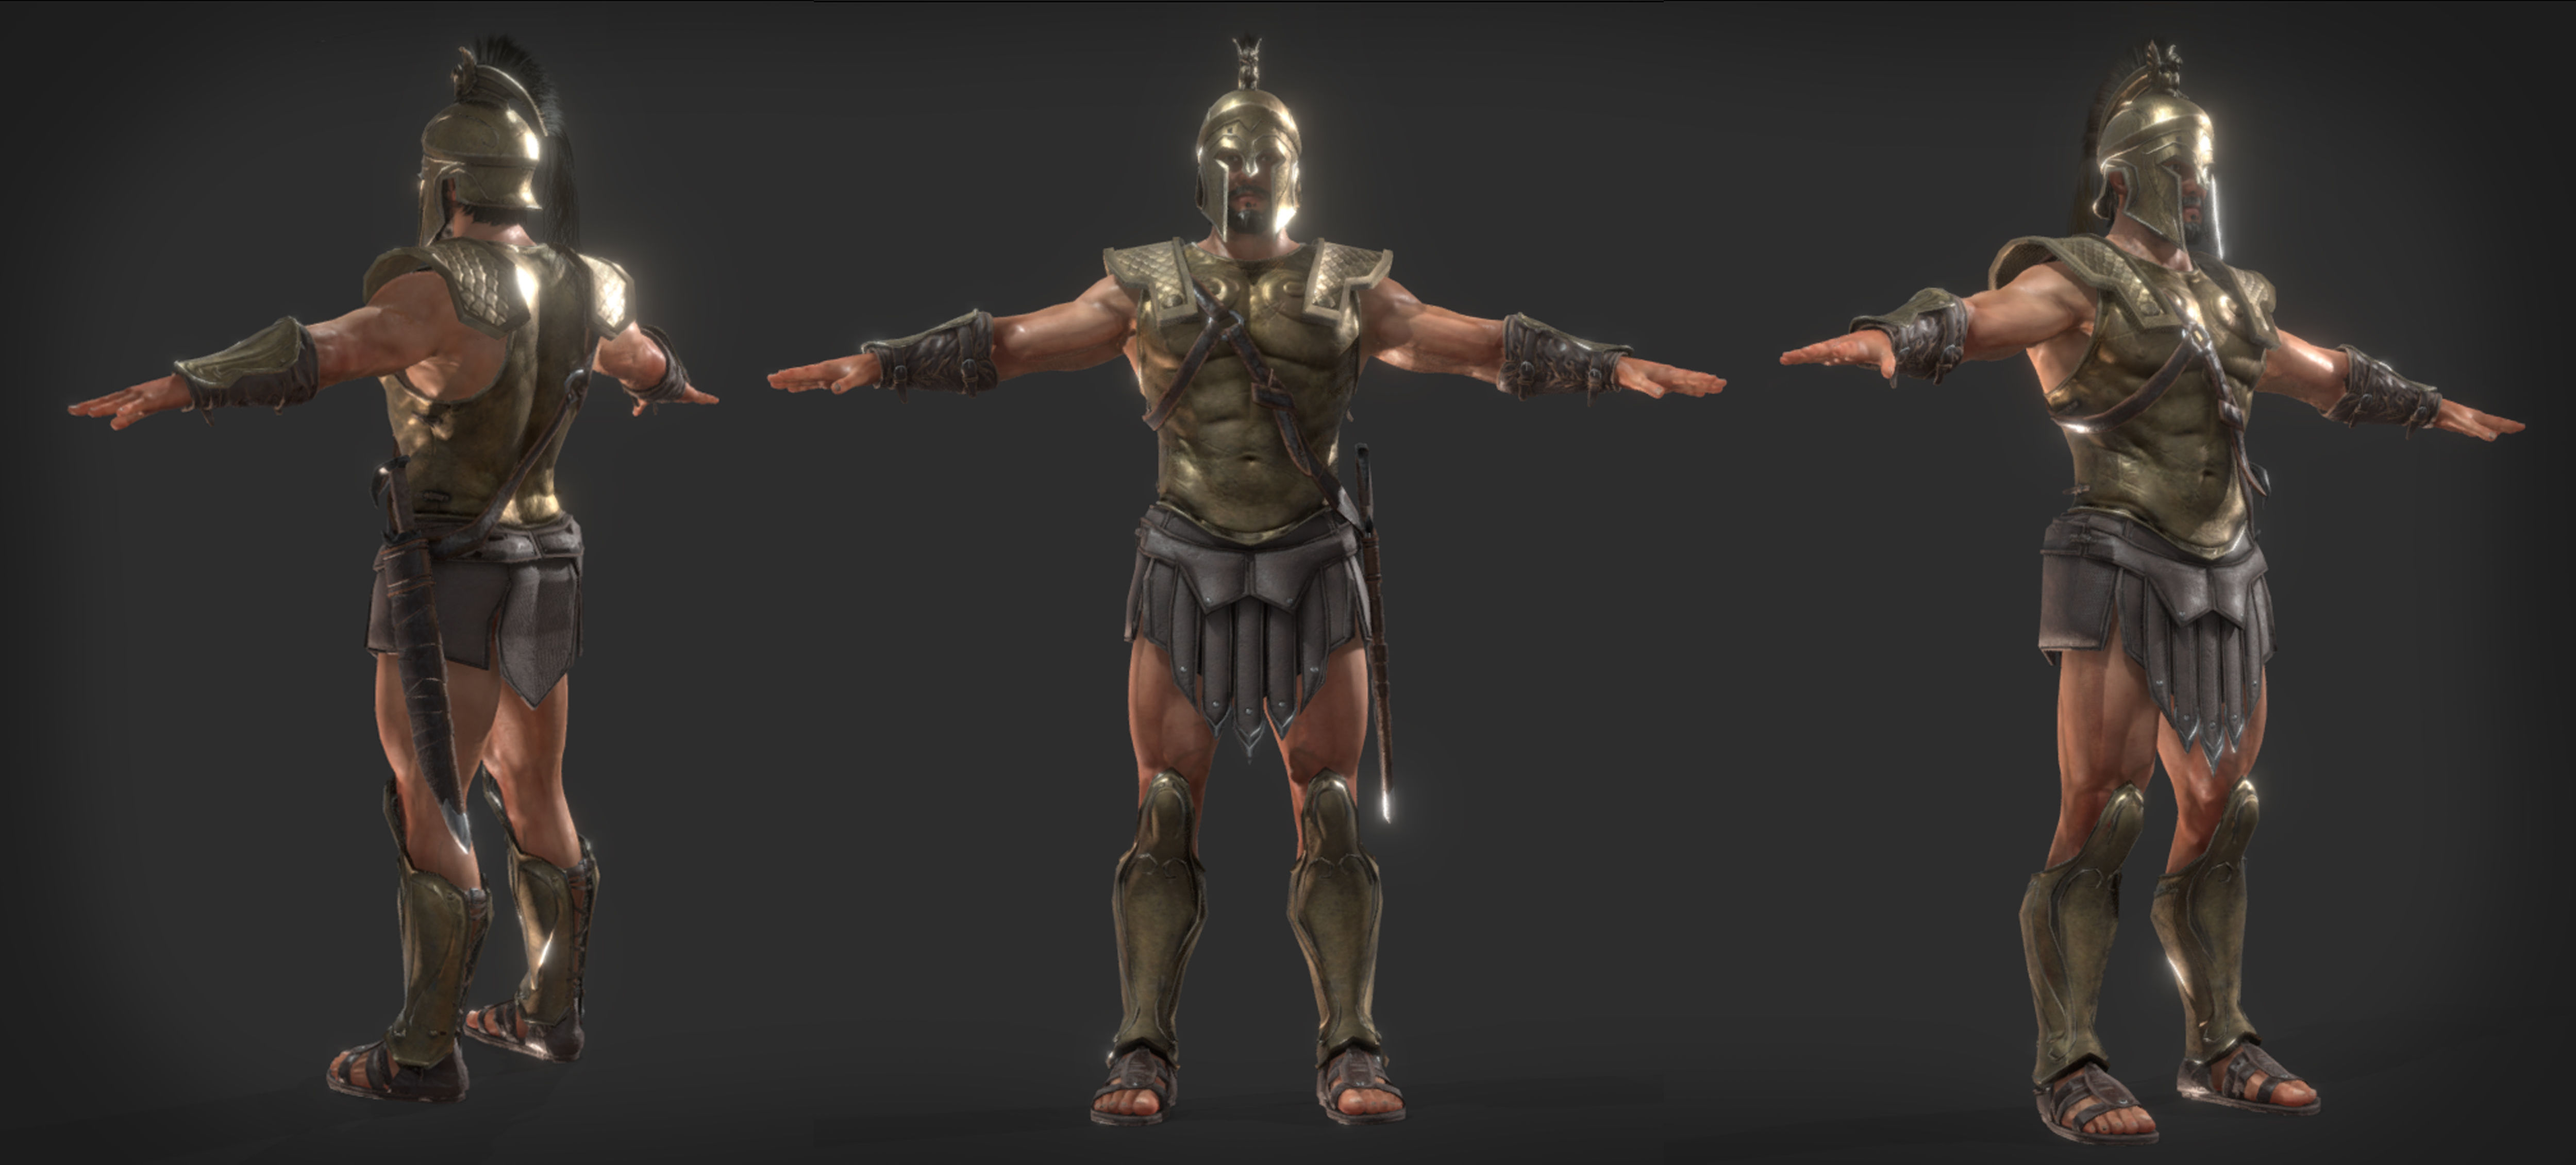 Spartan Warrior A pose for Game 3D model | CGTrader